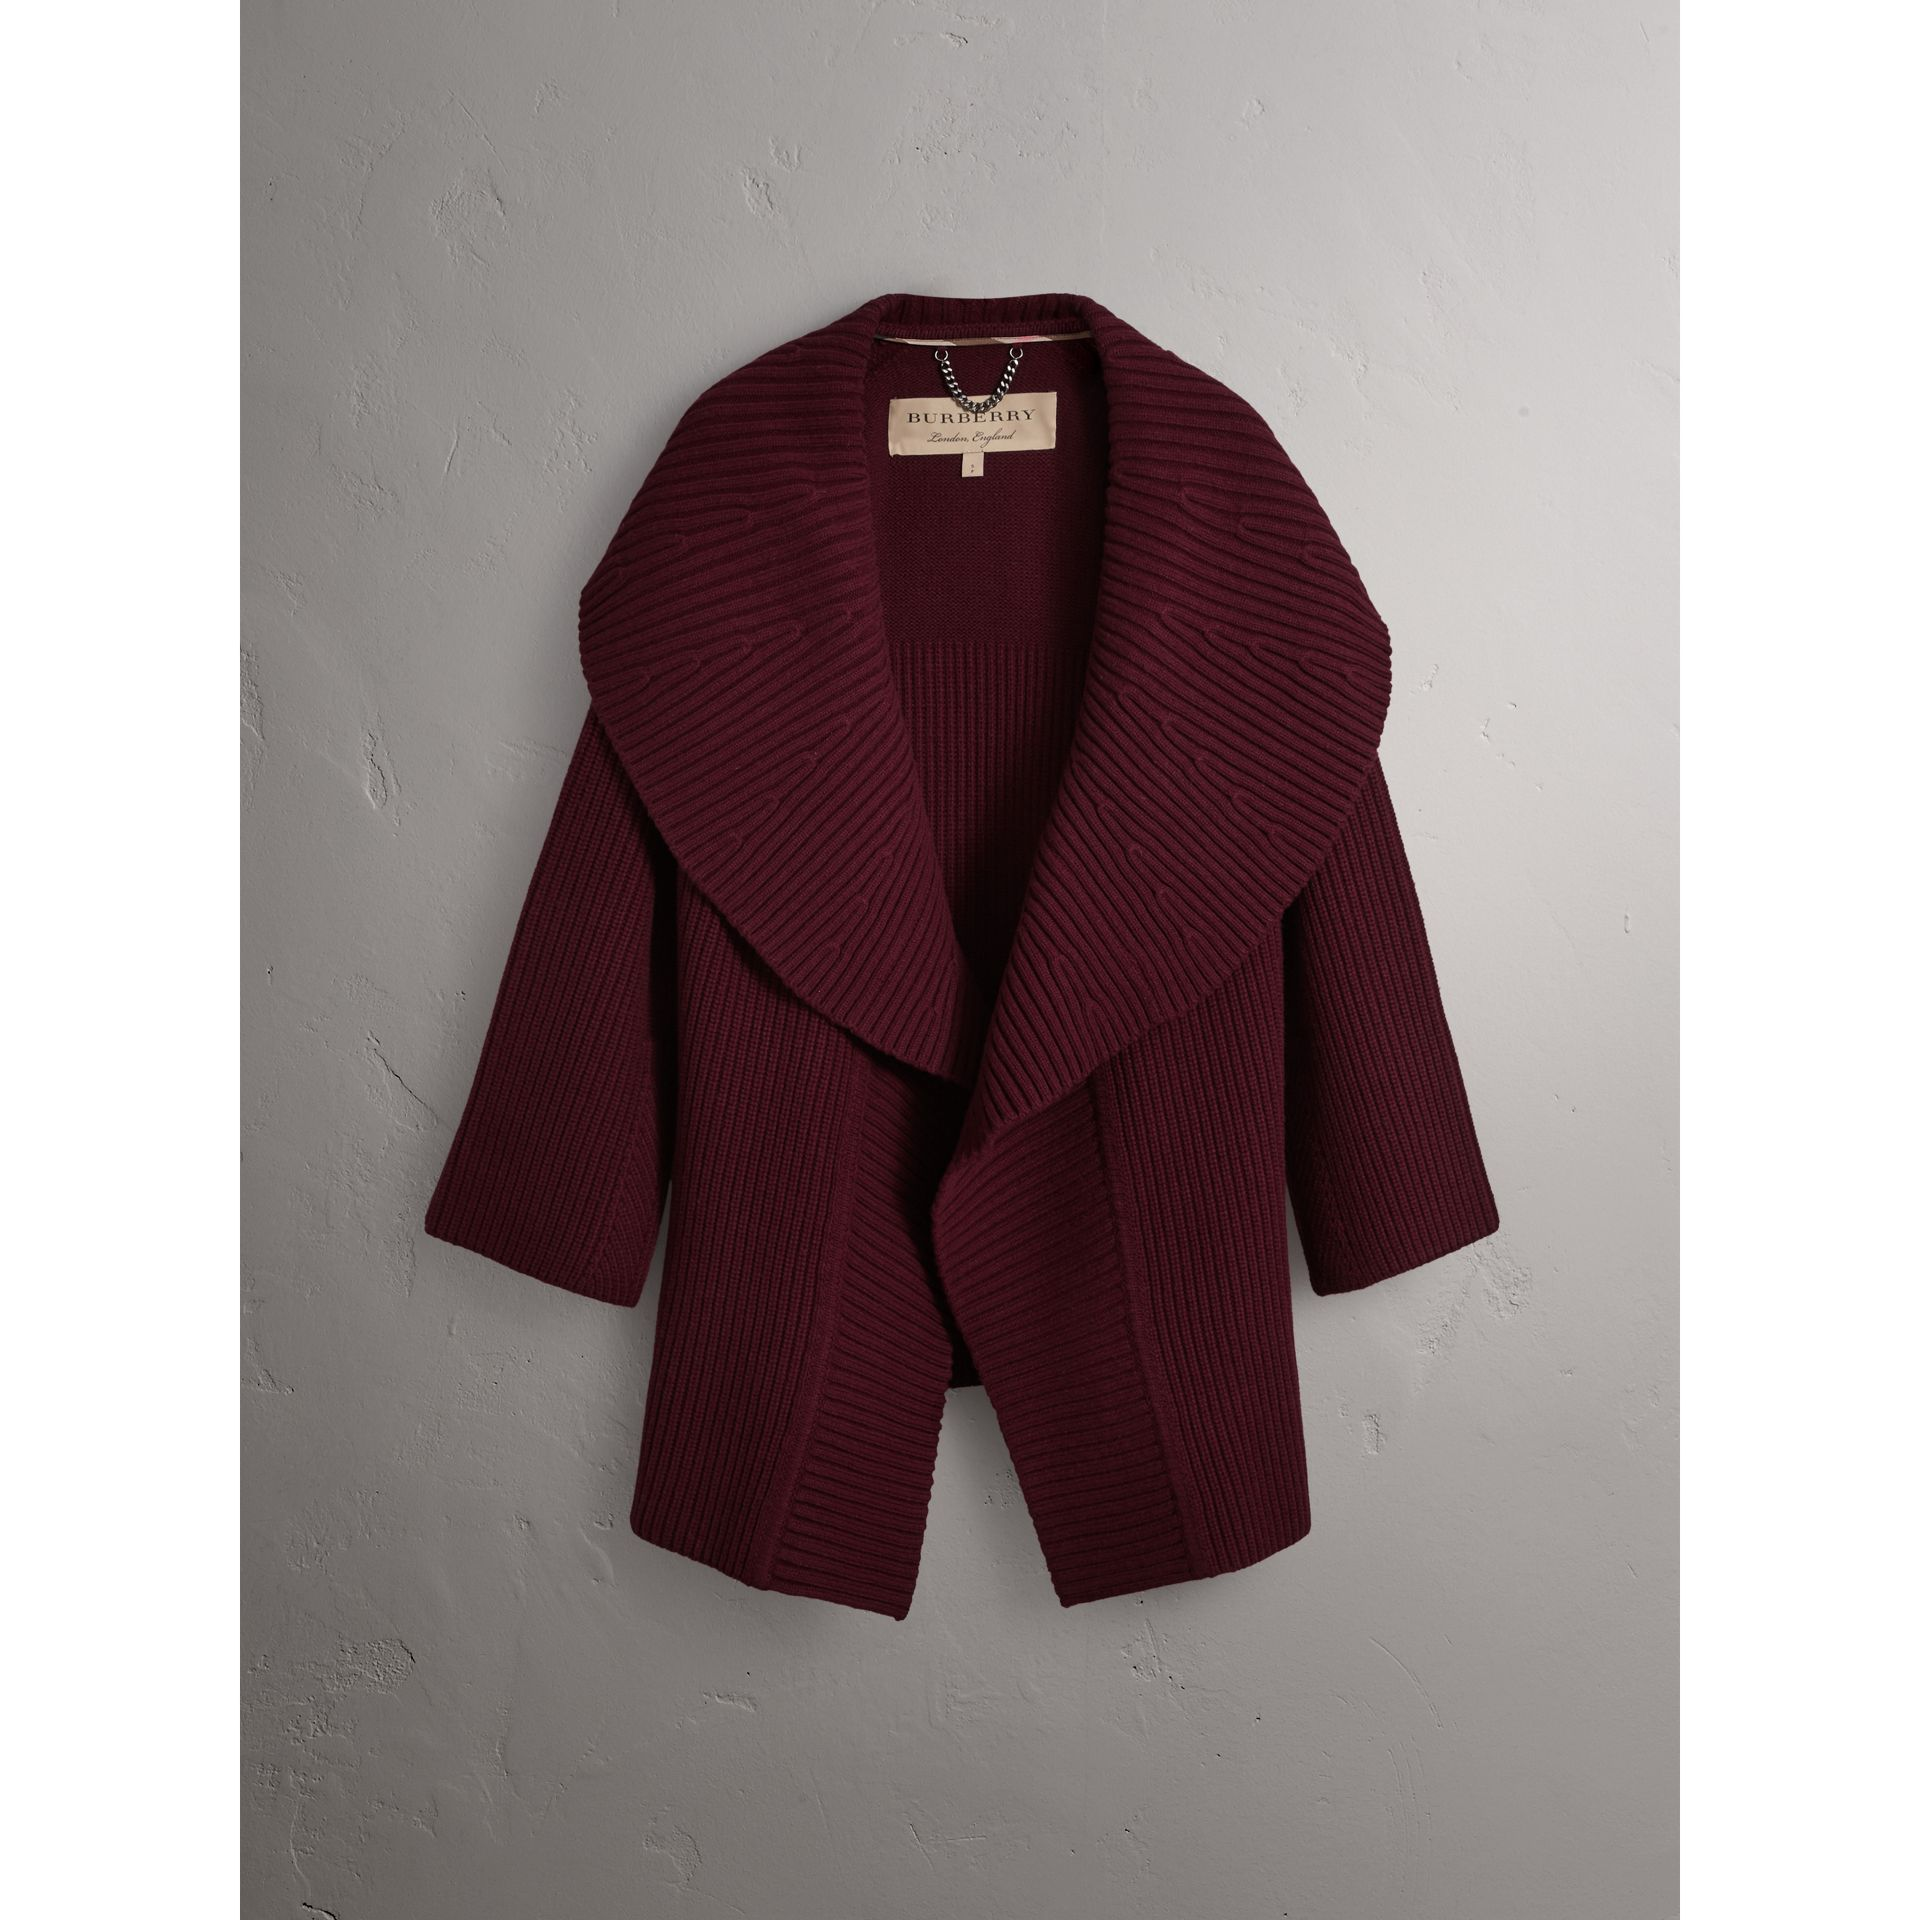 Ribbed Wool Cashmere Cardigan Coat in Burgundy - Women | Burberry United States - gallery image 4